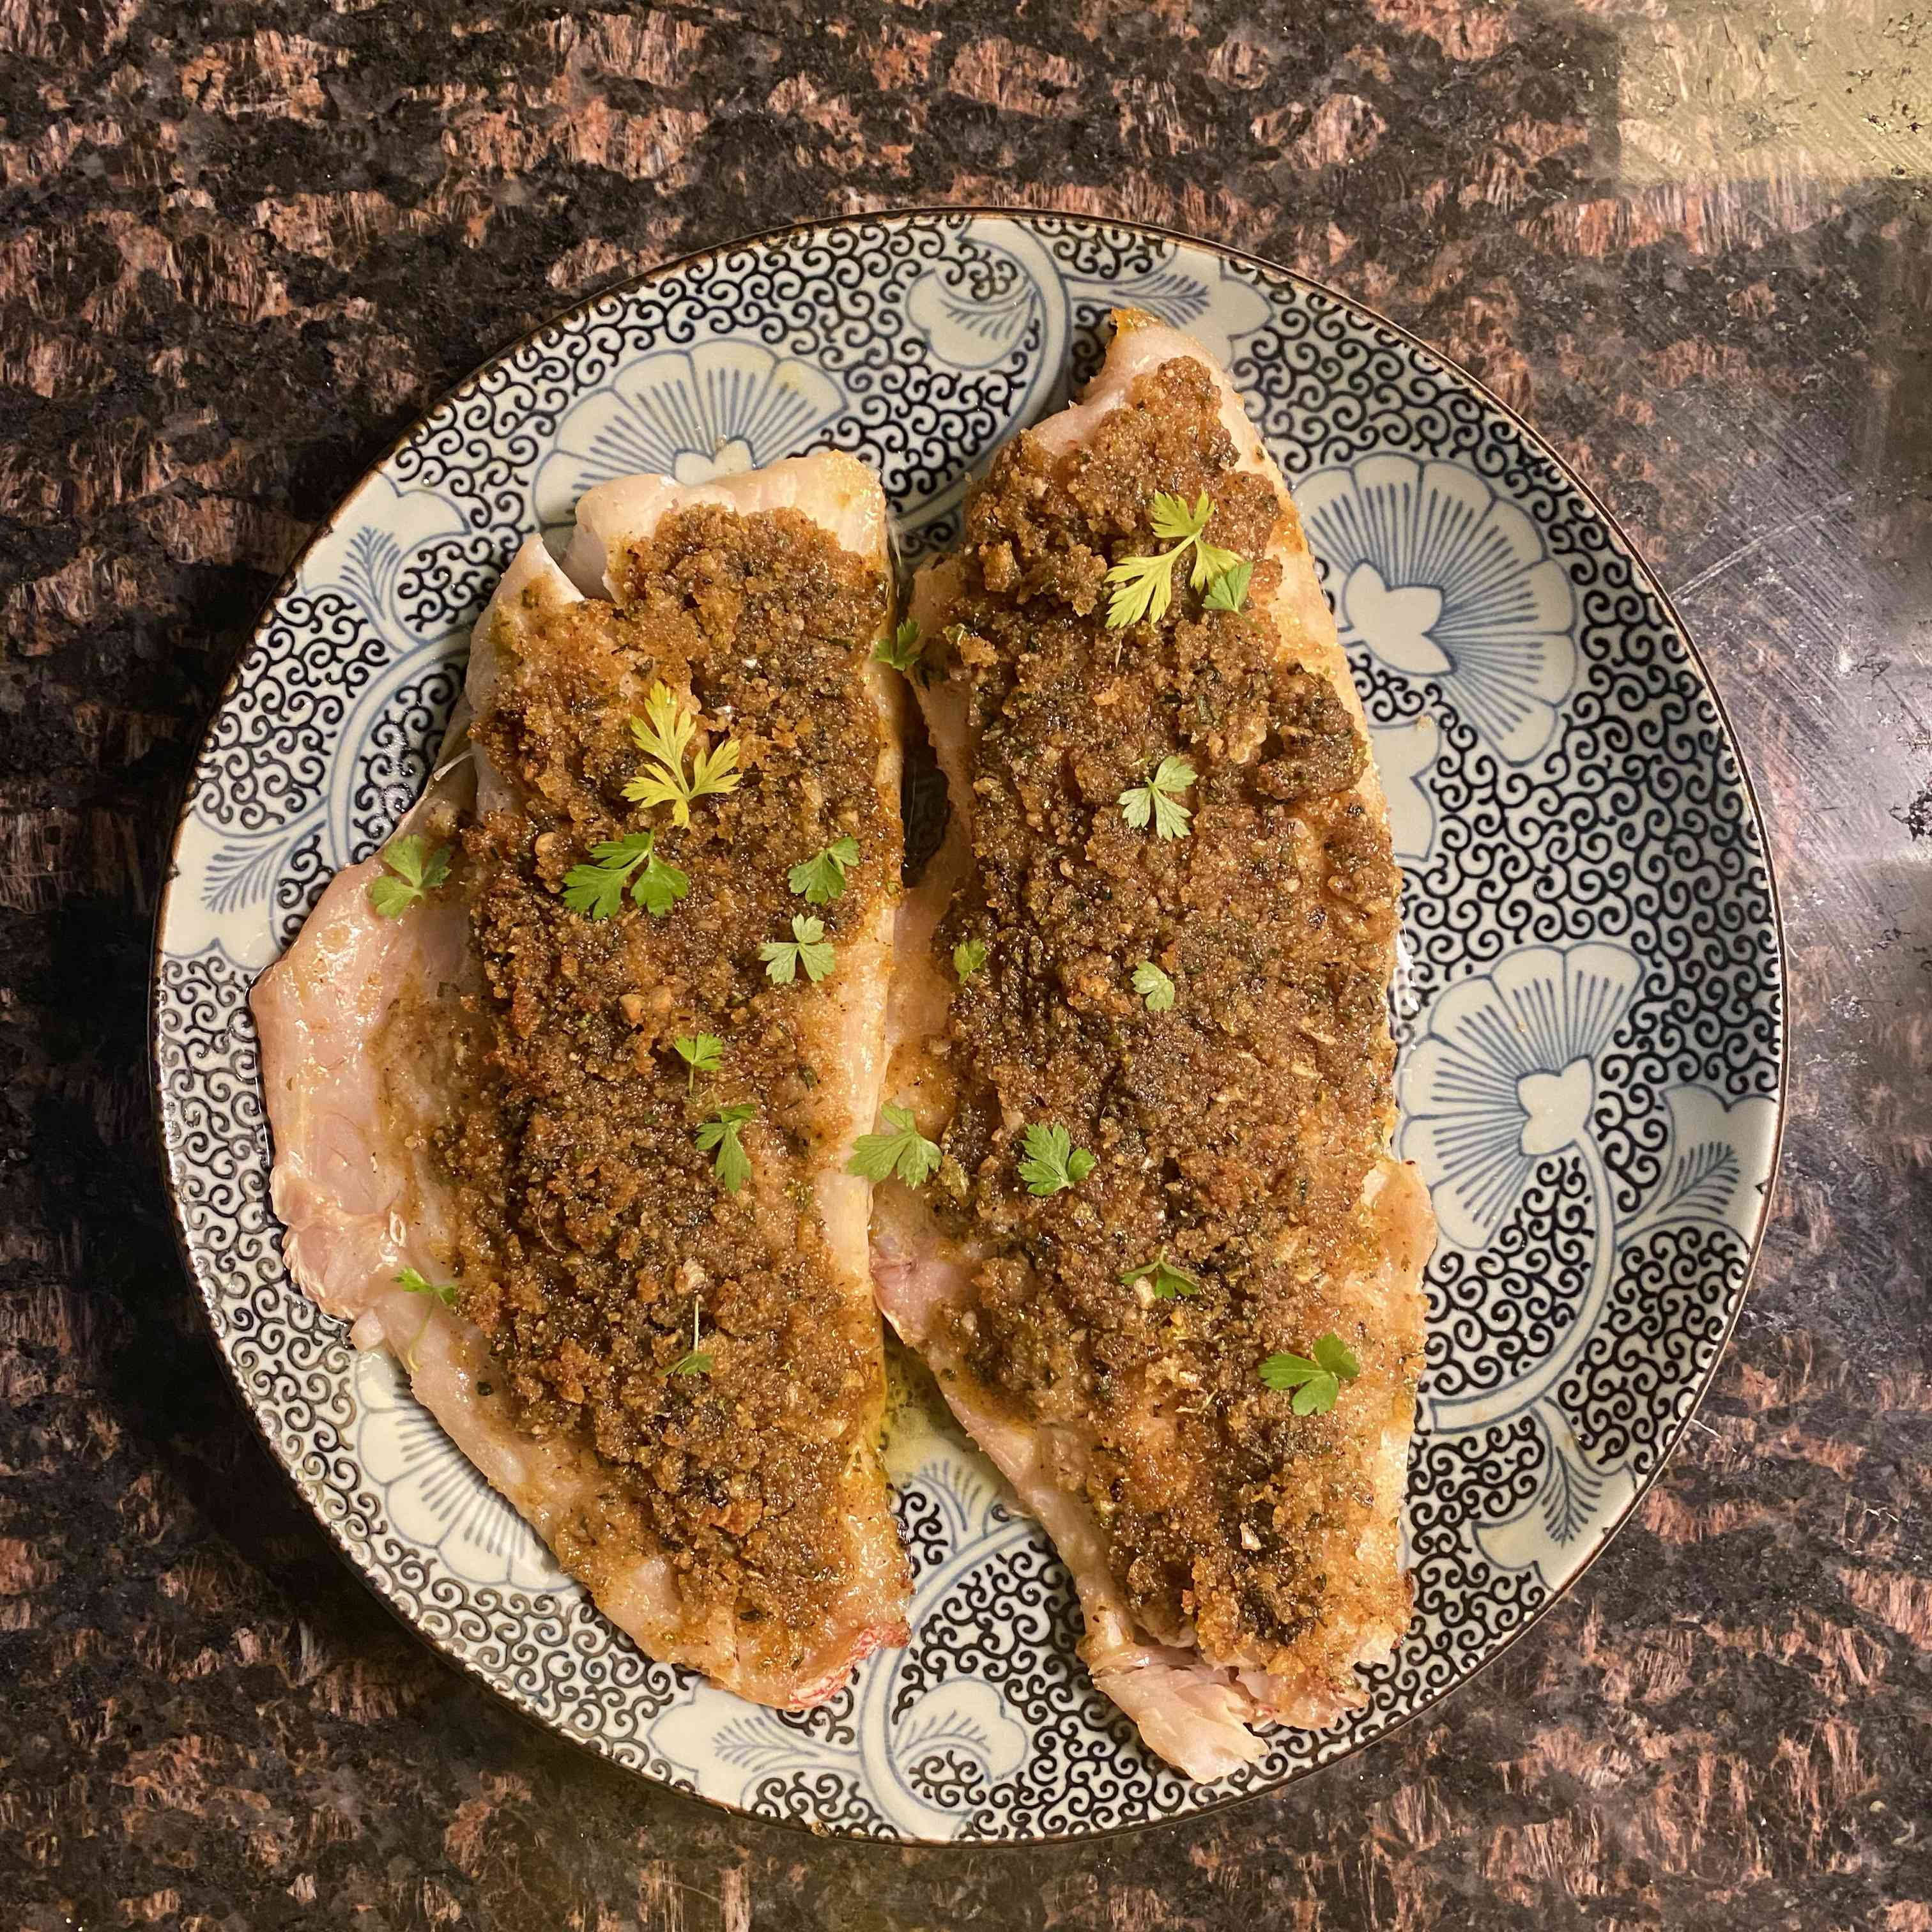 Baked Red Snapper With Garlic and Herbs Recipe Test